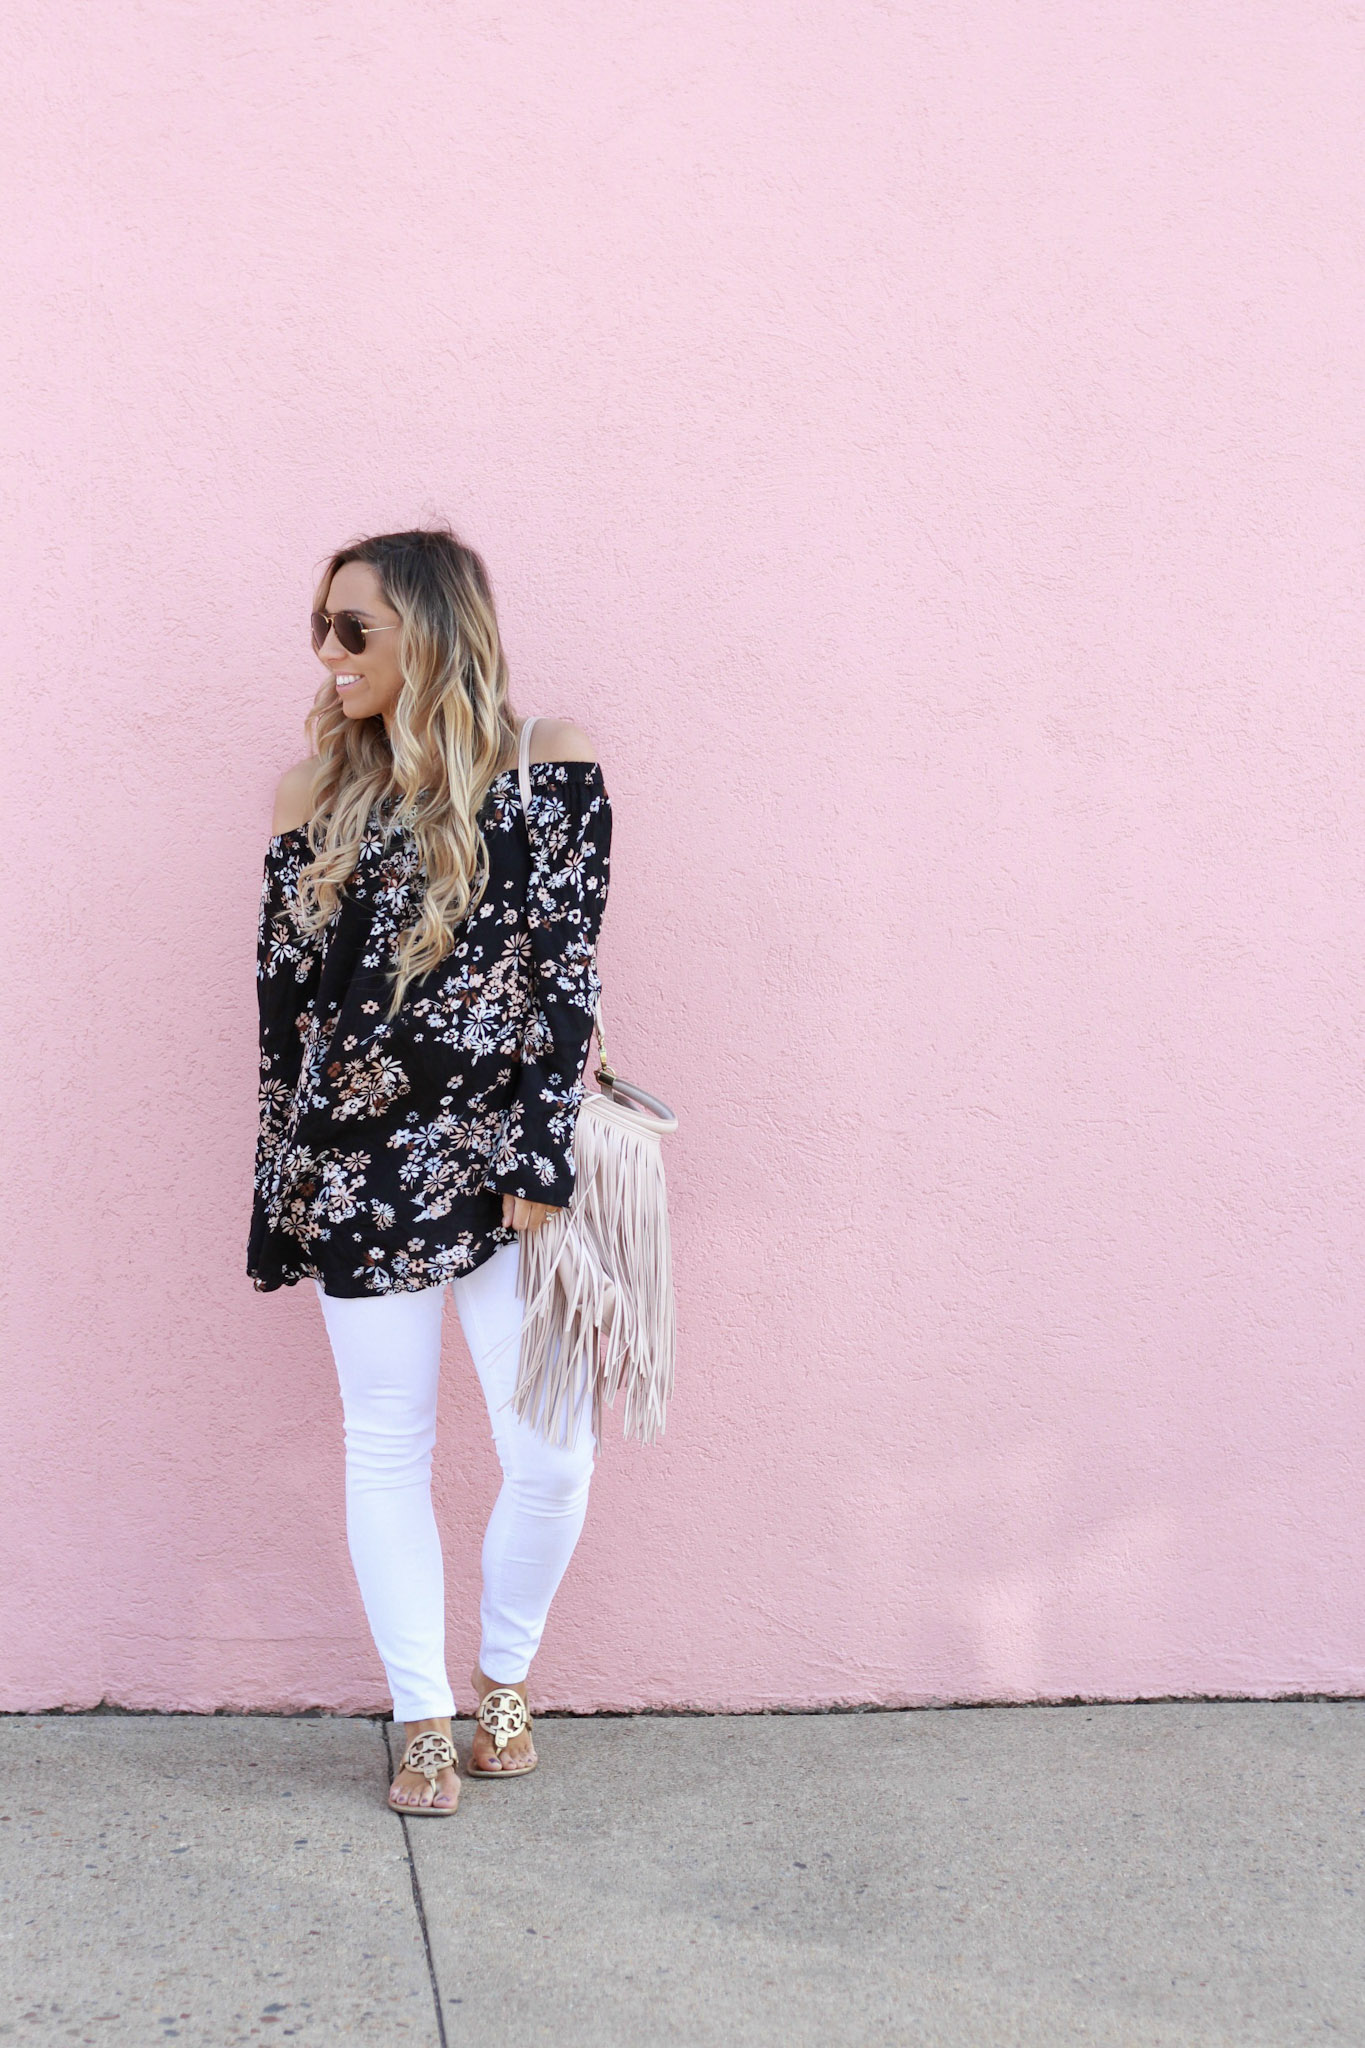 accordingtoblaire, according to blaire, floral ots top, nordstrom, fashion blogger, rva blogger, fringe bag, white skinny jeans, maternity jeans, bellami hair extensions, guy tang extentions